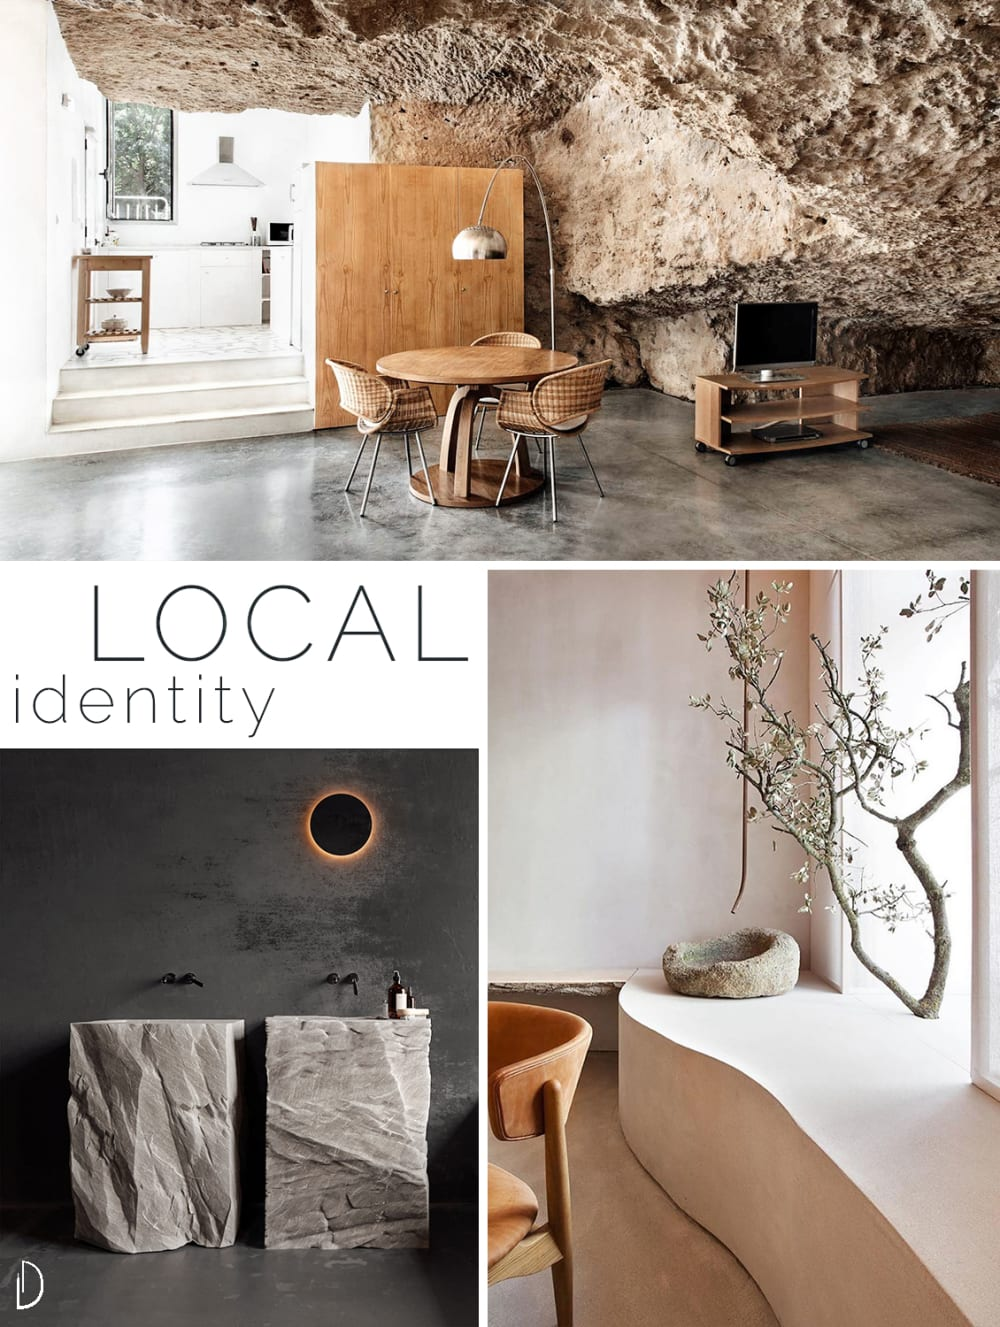 """Biophilic design moodboard showing 3 examples of local identity: a home built inside a natural cave, solid stone sinks in a modern bathroom and a branch used as decor in a contemporary living room.<span class=""""sr-only""""> (opened in a new window/tab)</span>"""